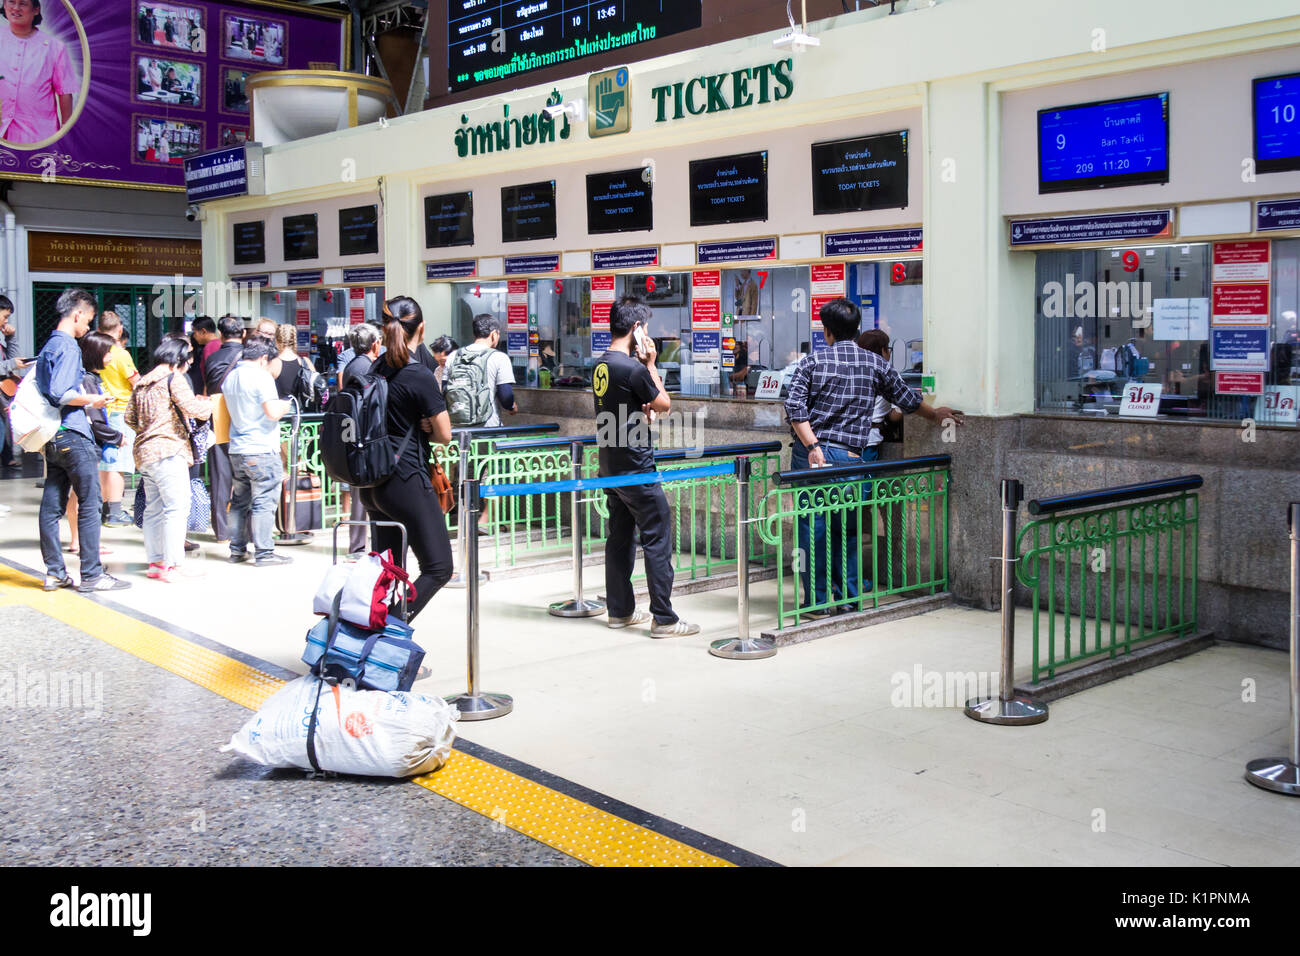 Passengers queueing for tickets, Hua Lamphong station, Bangkok, Thailand Stock Photo